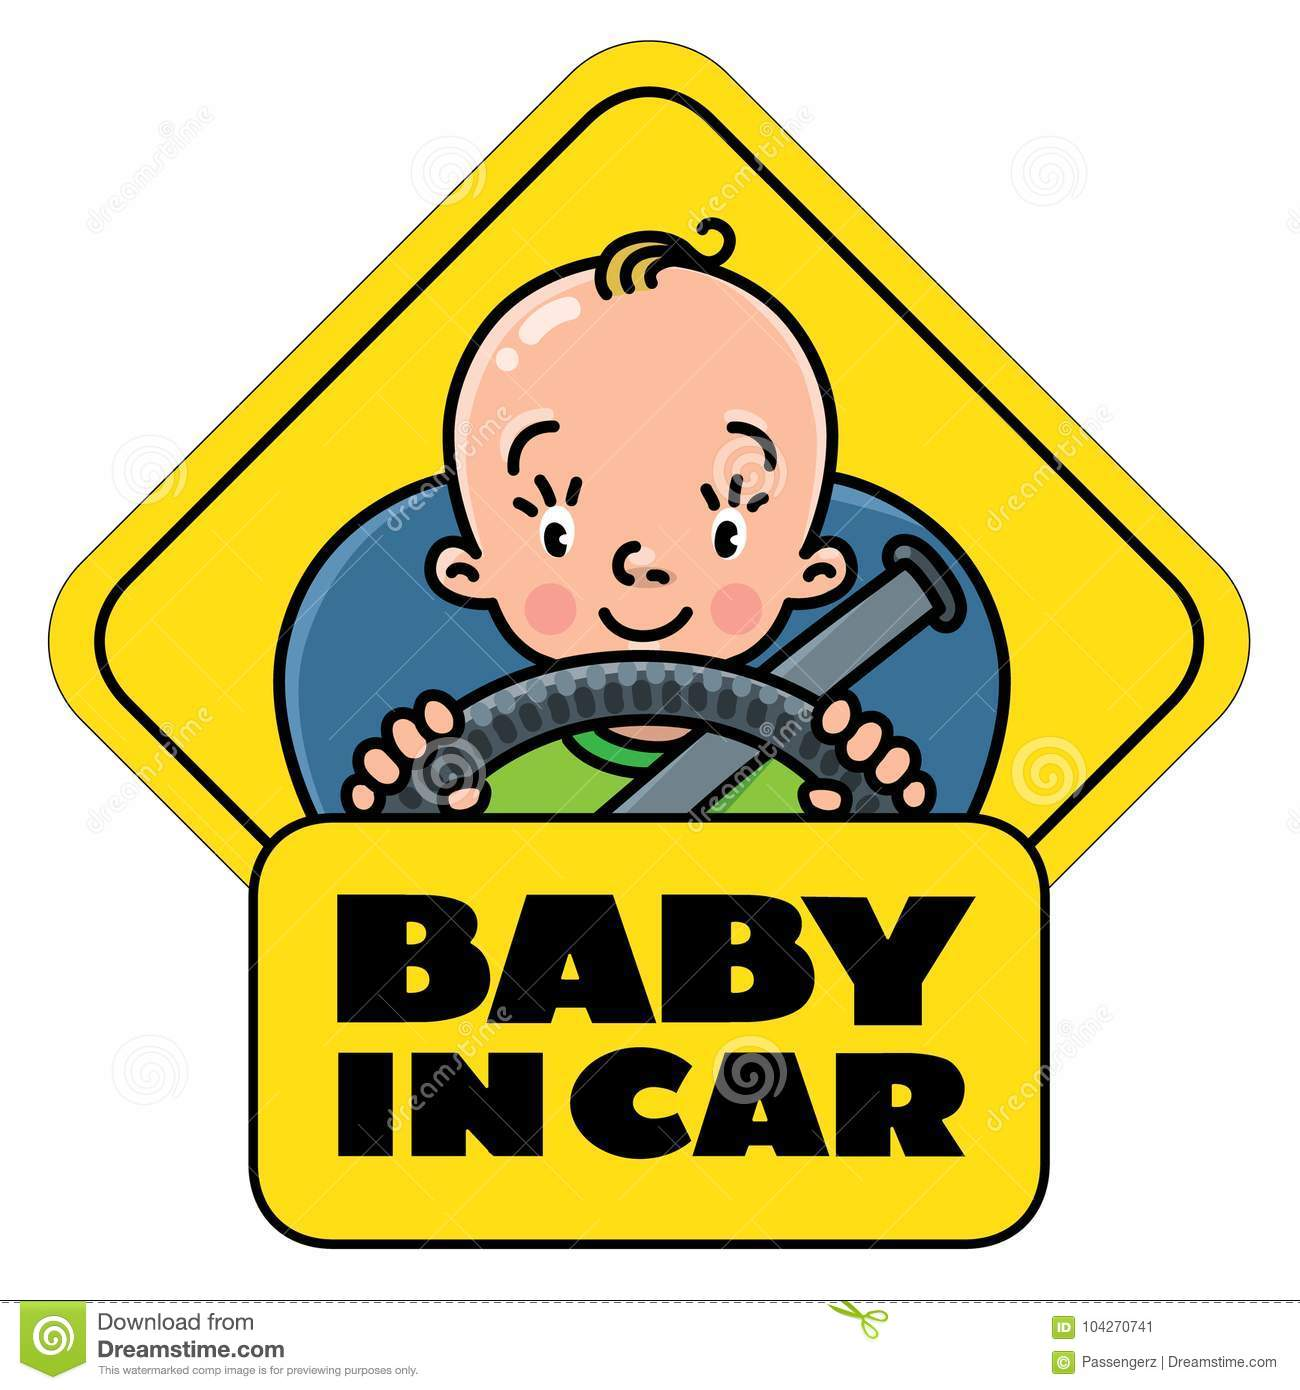 Baby in car back window sticker or sign